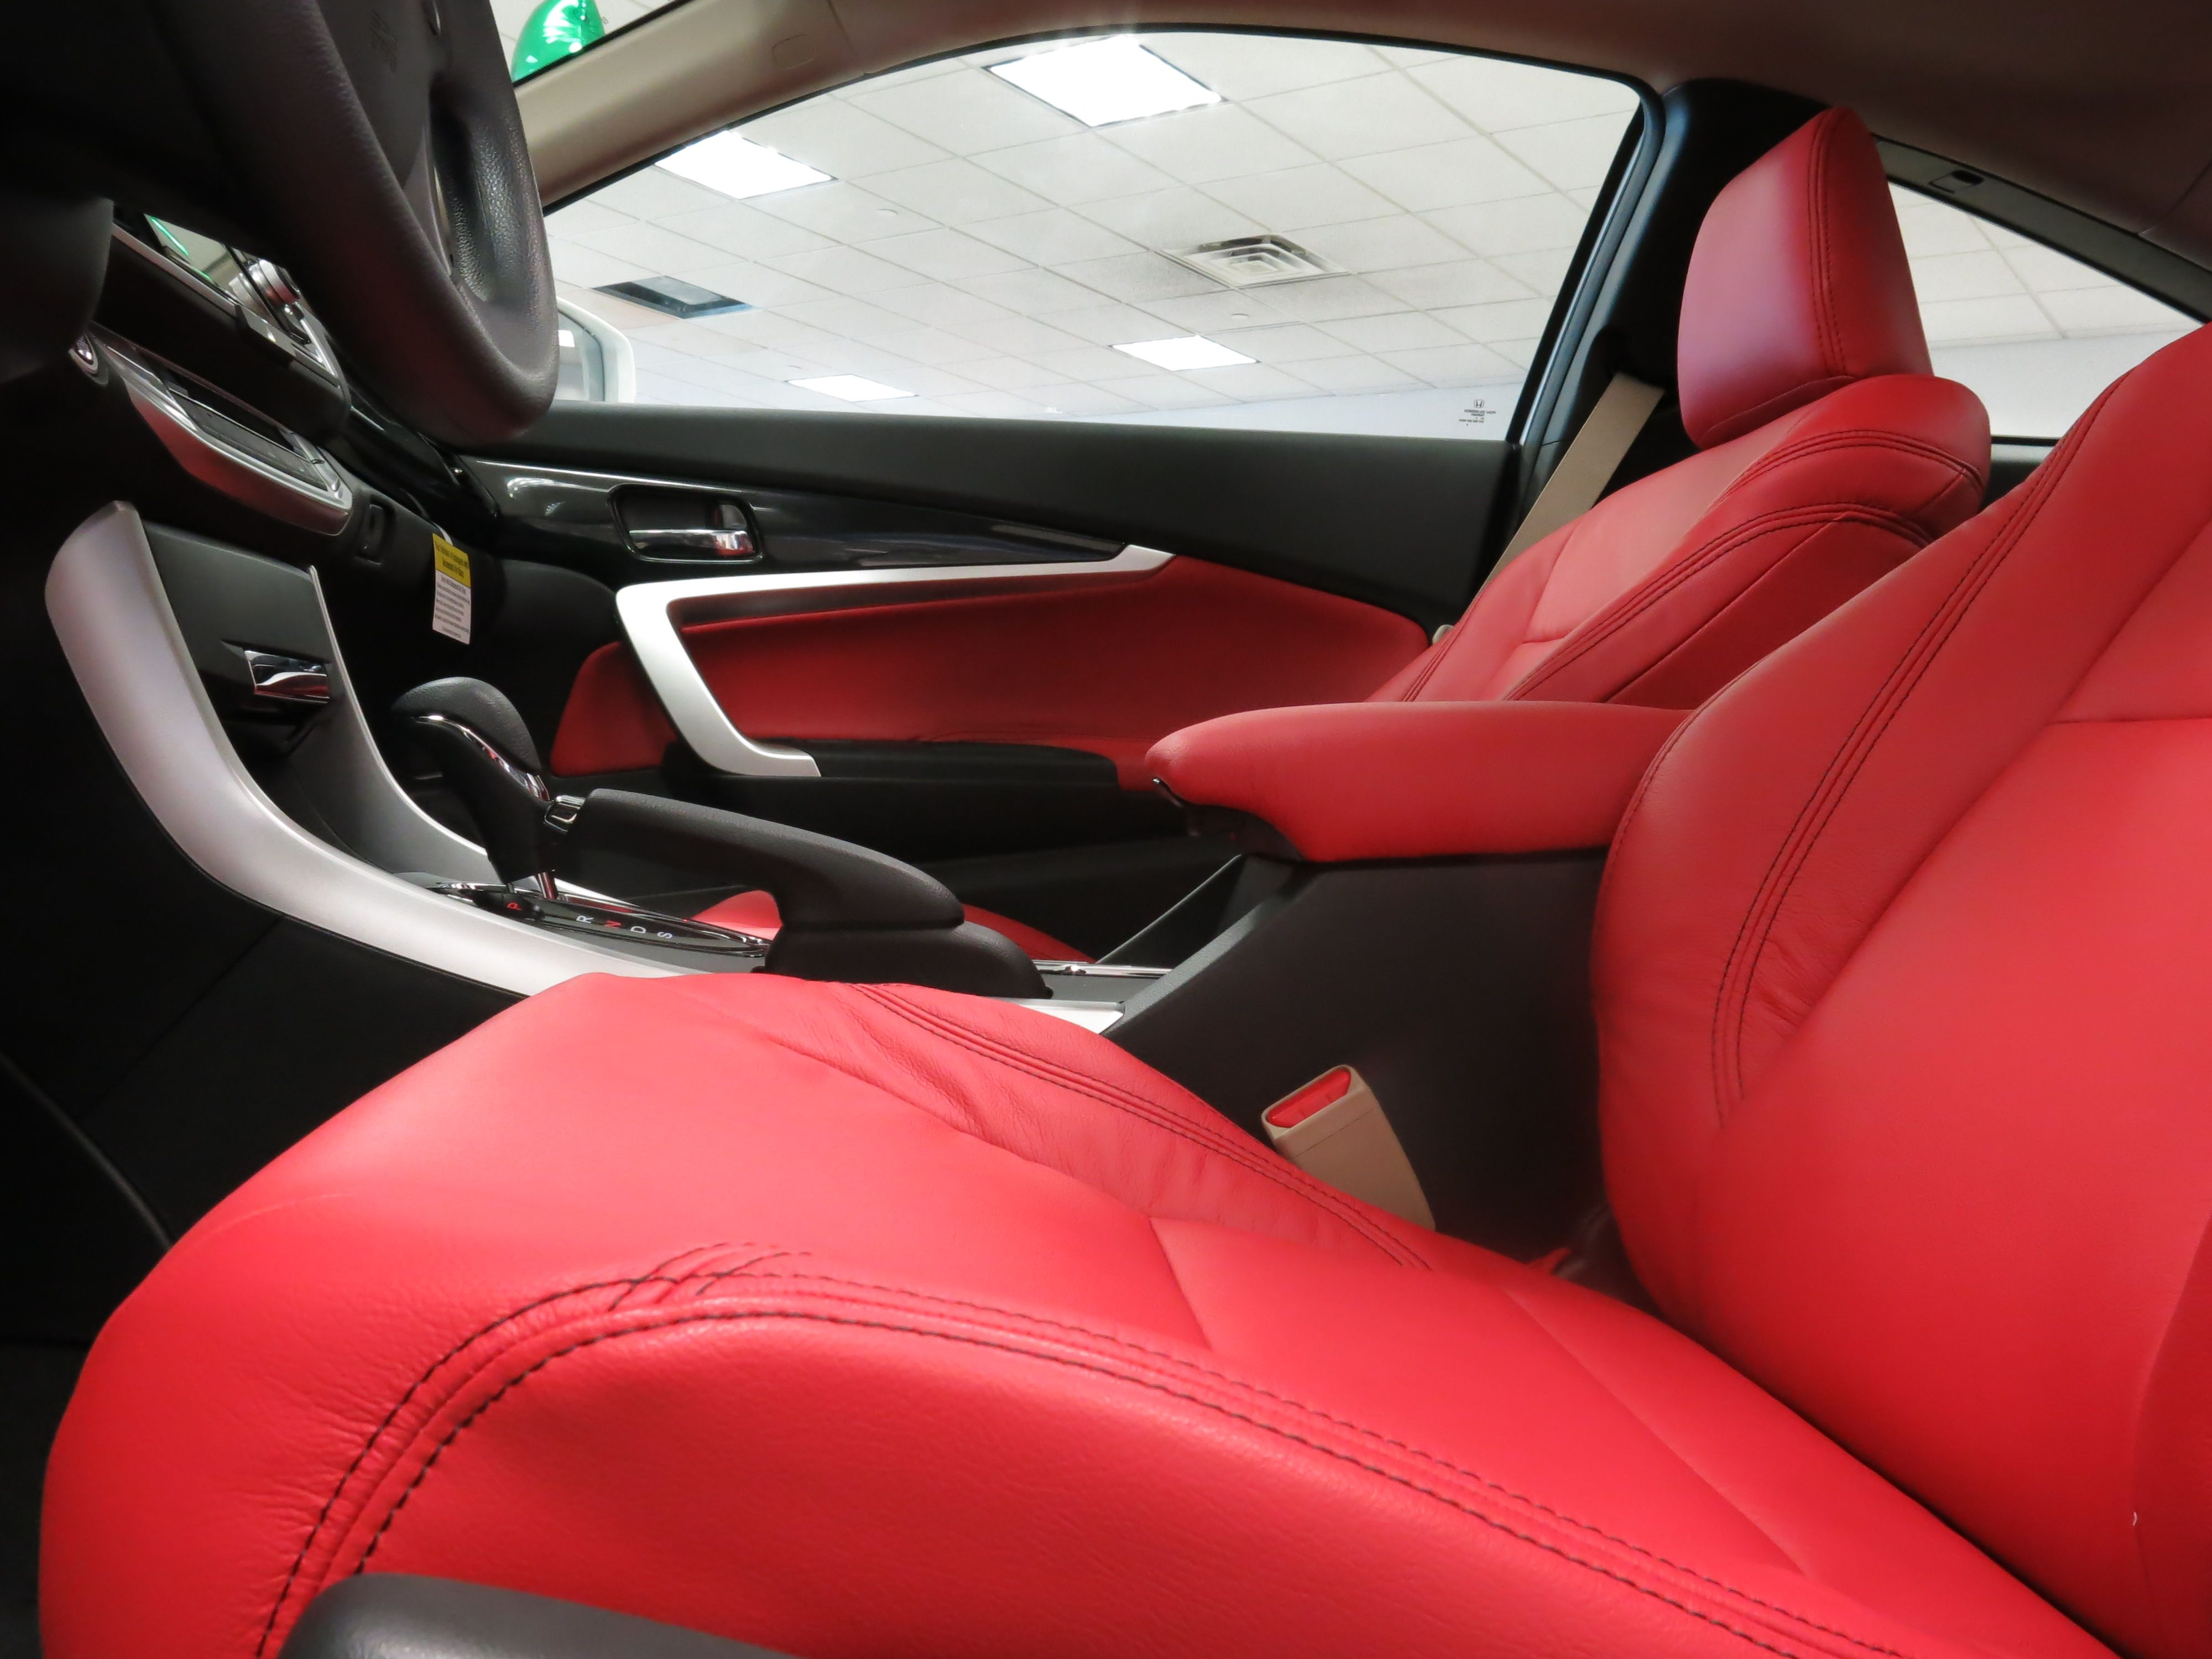 The Custom Leather Seats We Installed On This 2015 Honda Accord Is Red Hot!